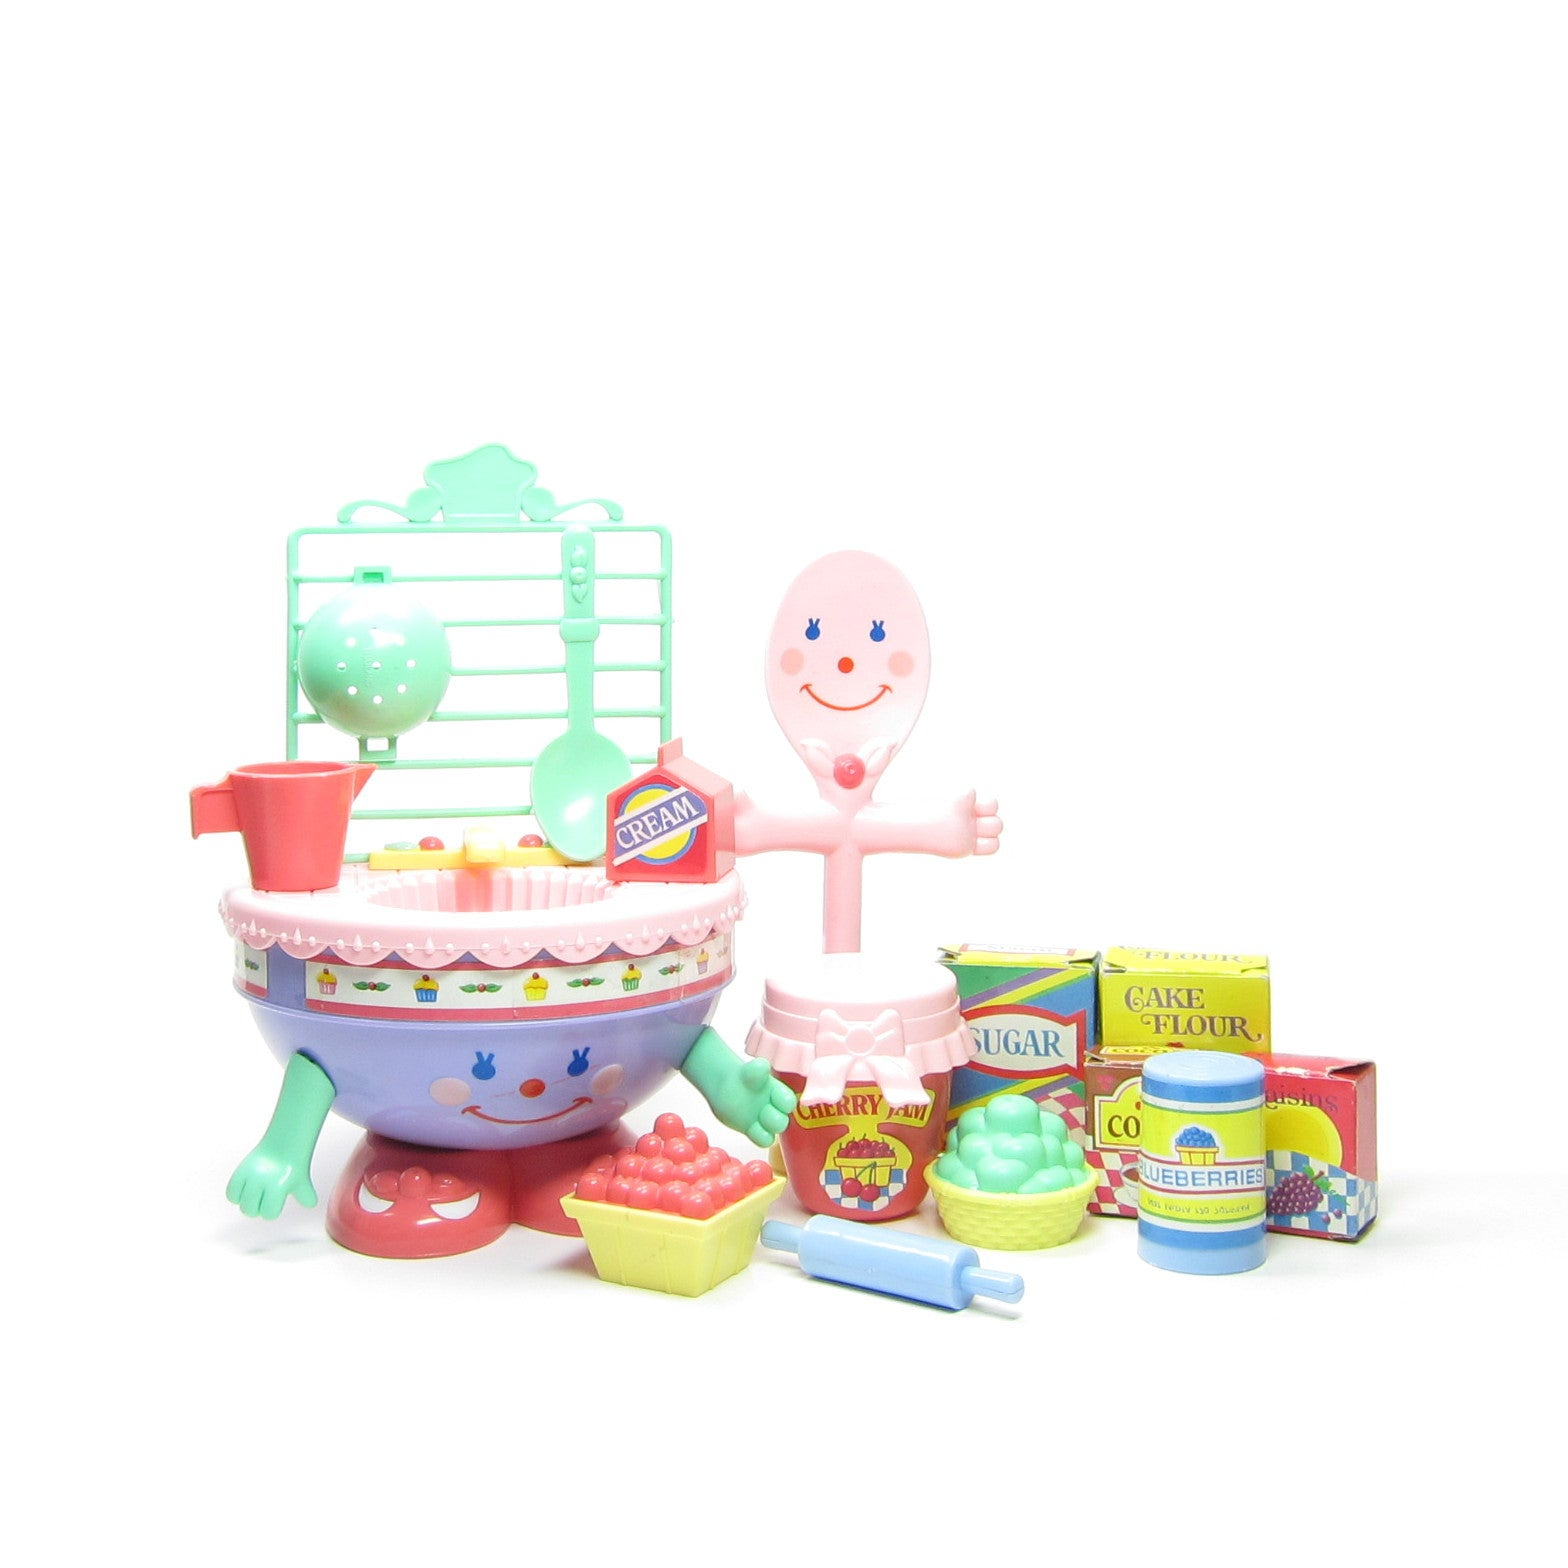 Cherry Merry Muffin Mix & Wash Playset for dolls